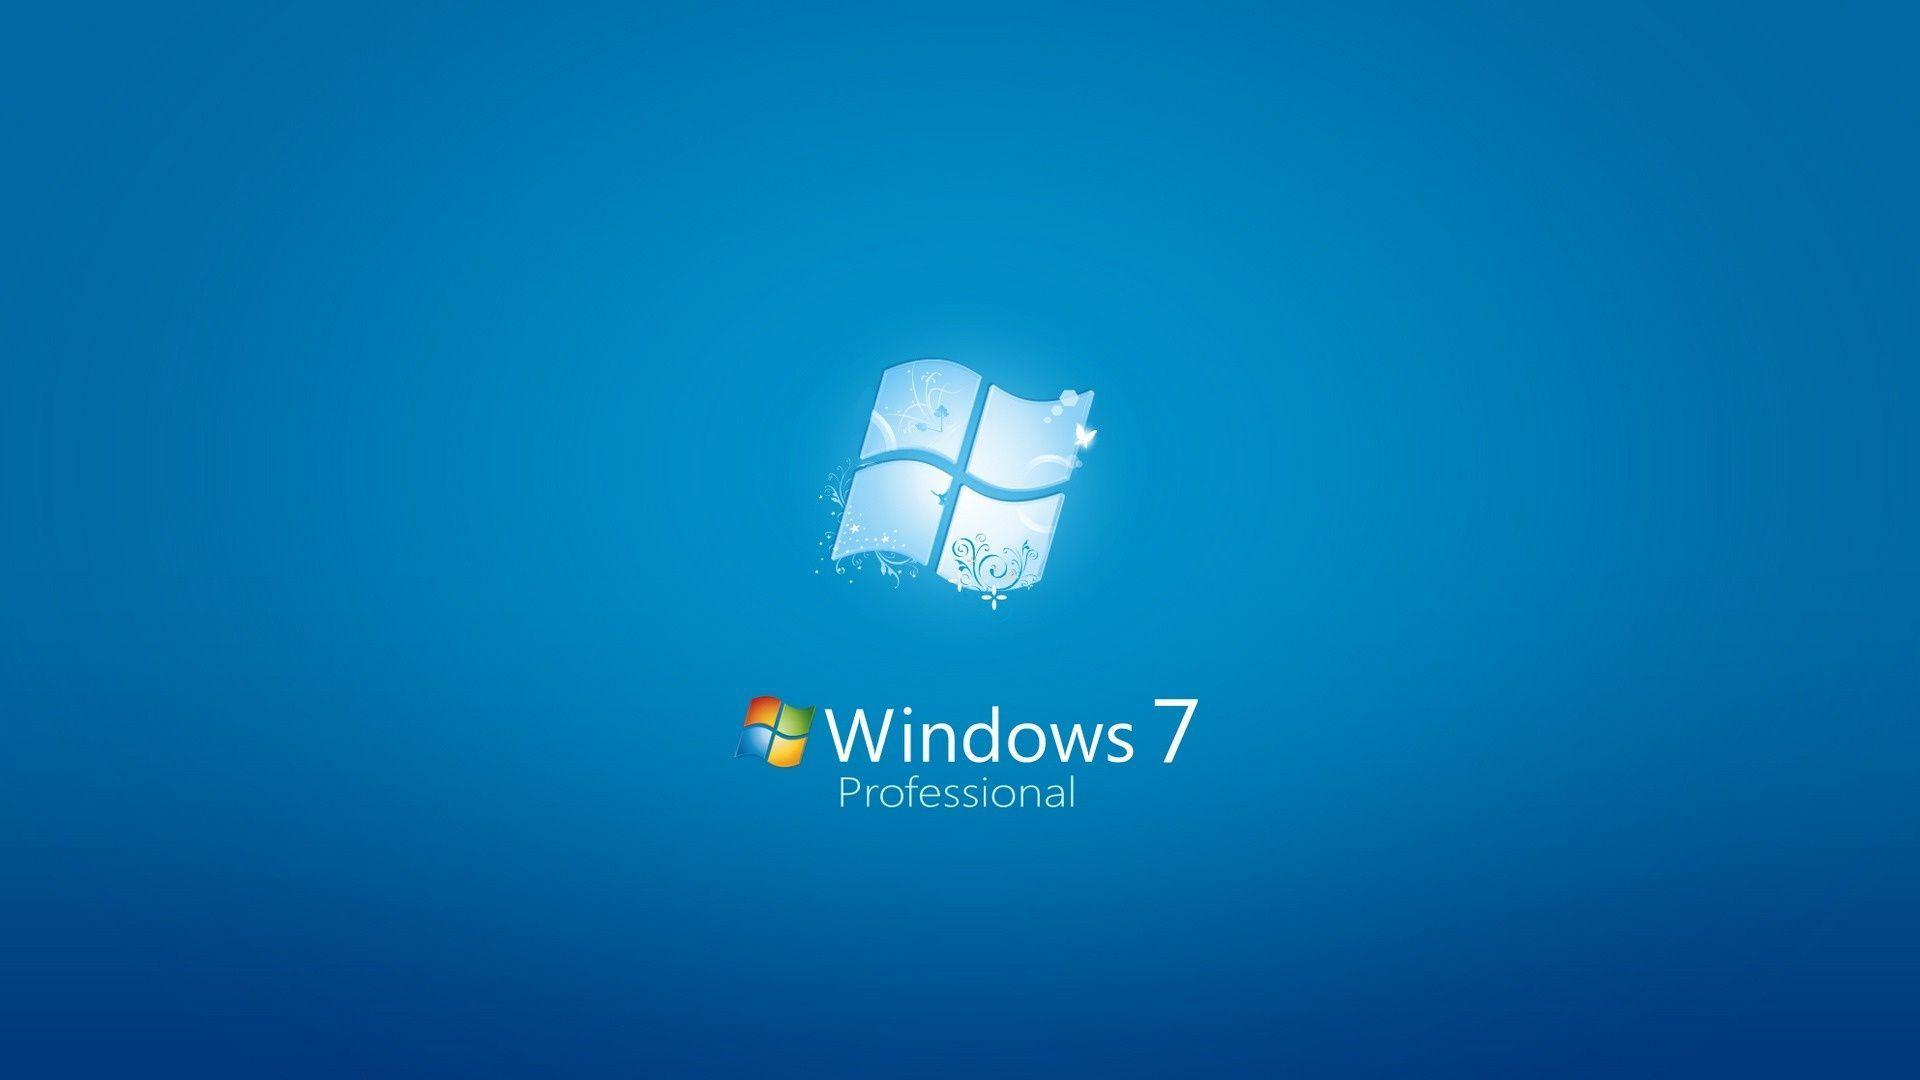 Windows 7 Hd Wallpapers 1080p 1920x1080 High Definition